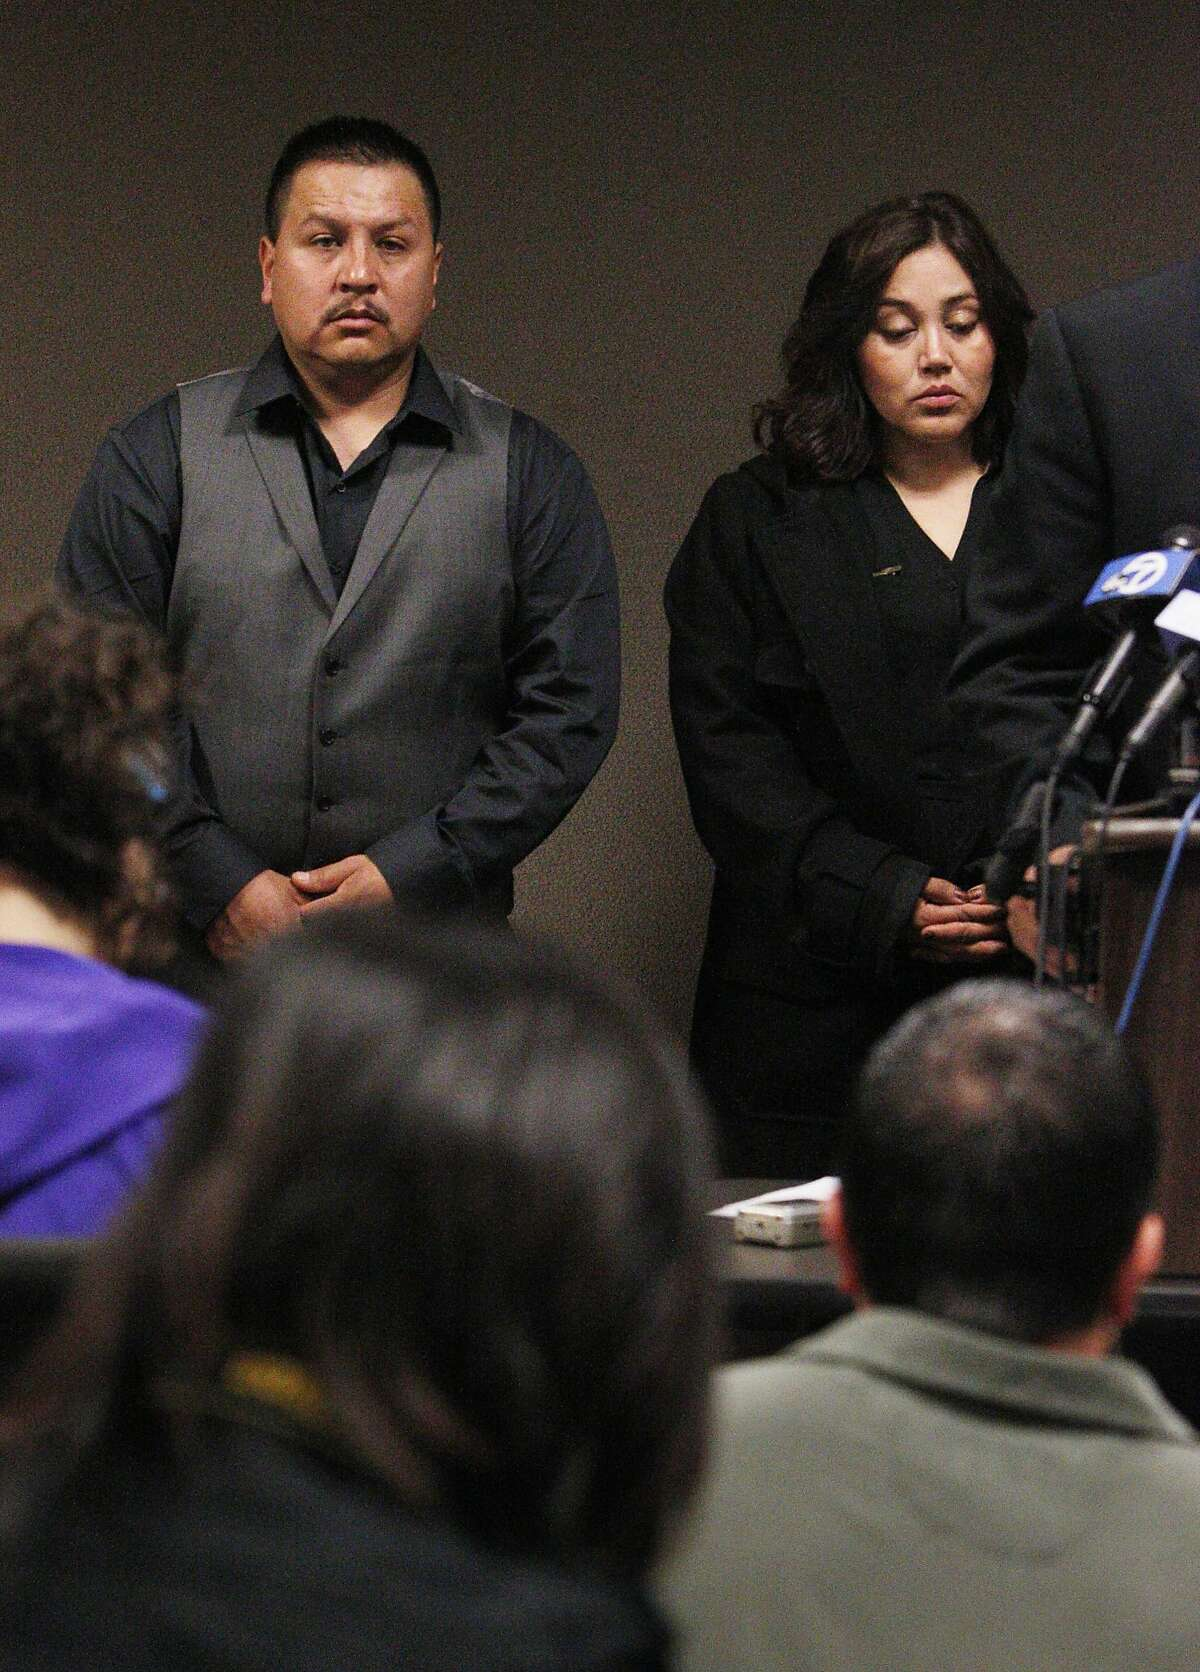 Rodrigo Lopez (l to r) and Sujay Cruz, parents of 13-year-old Andy Lopez Cruz, who was shot October 22 by a Sonoma County sheriff's deputy, stand during a press conference on Monday, November 4, 2013 in San Francisco, Calif. A federal lawsuit has been filed by the family of 13-year-old Andy Lopez Cruz who was fatally shot on October 22 by a Sonoma County sheriff's deputy.